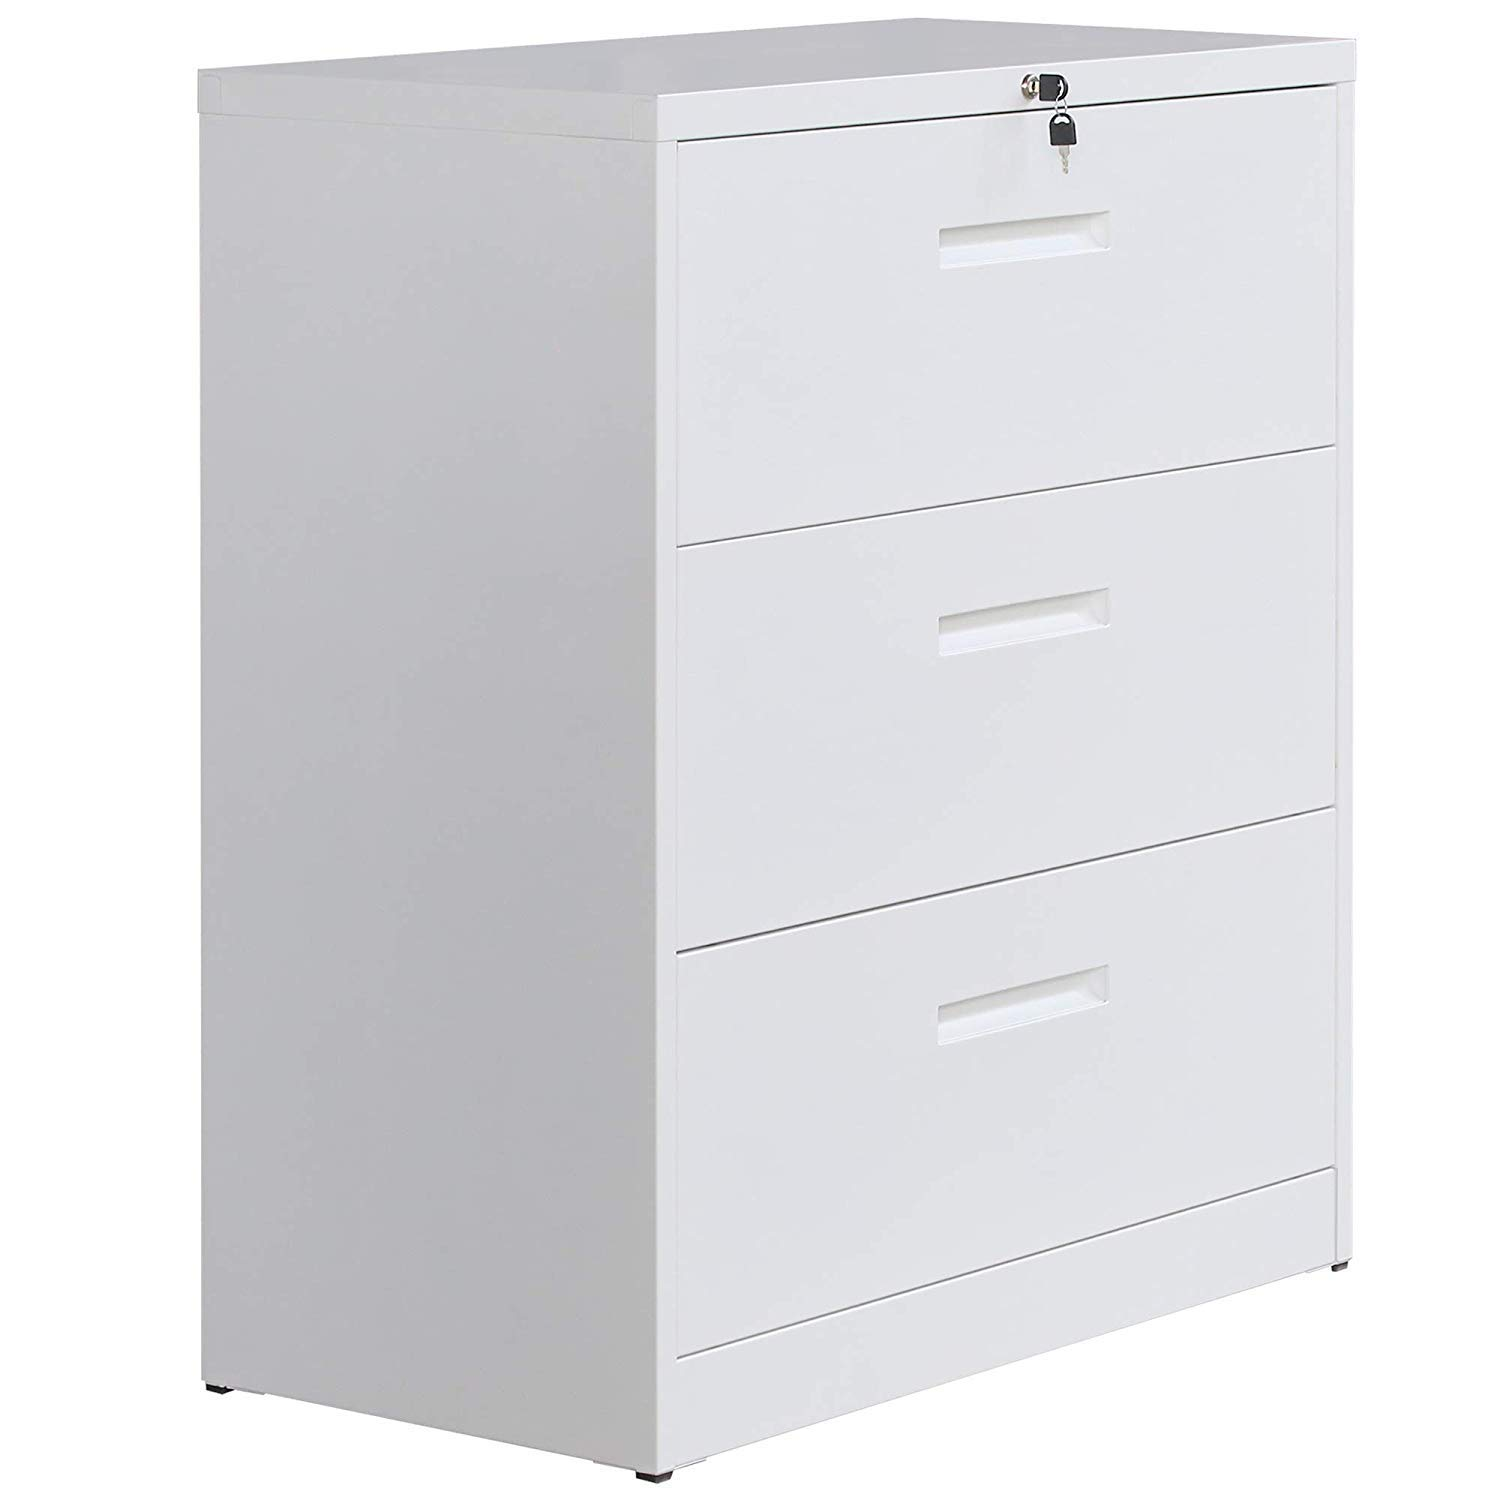 MIERES 1 Lockable Metal Heavy Duty 3 Drawer Lateral File Cabinet (White), Deep